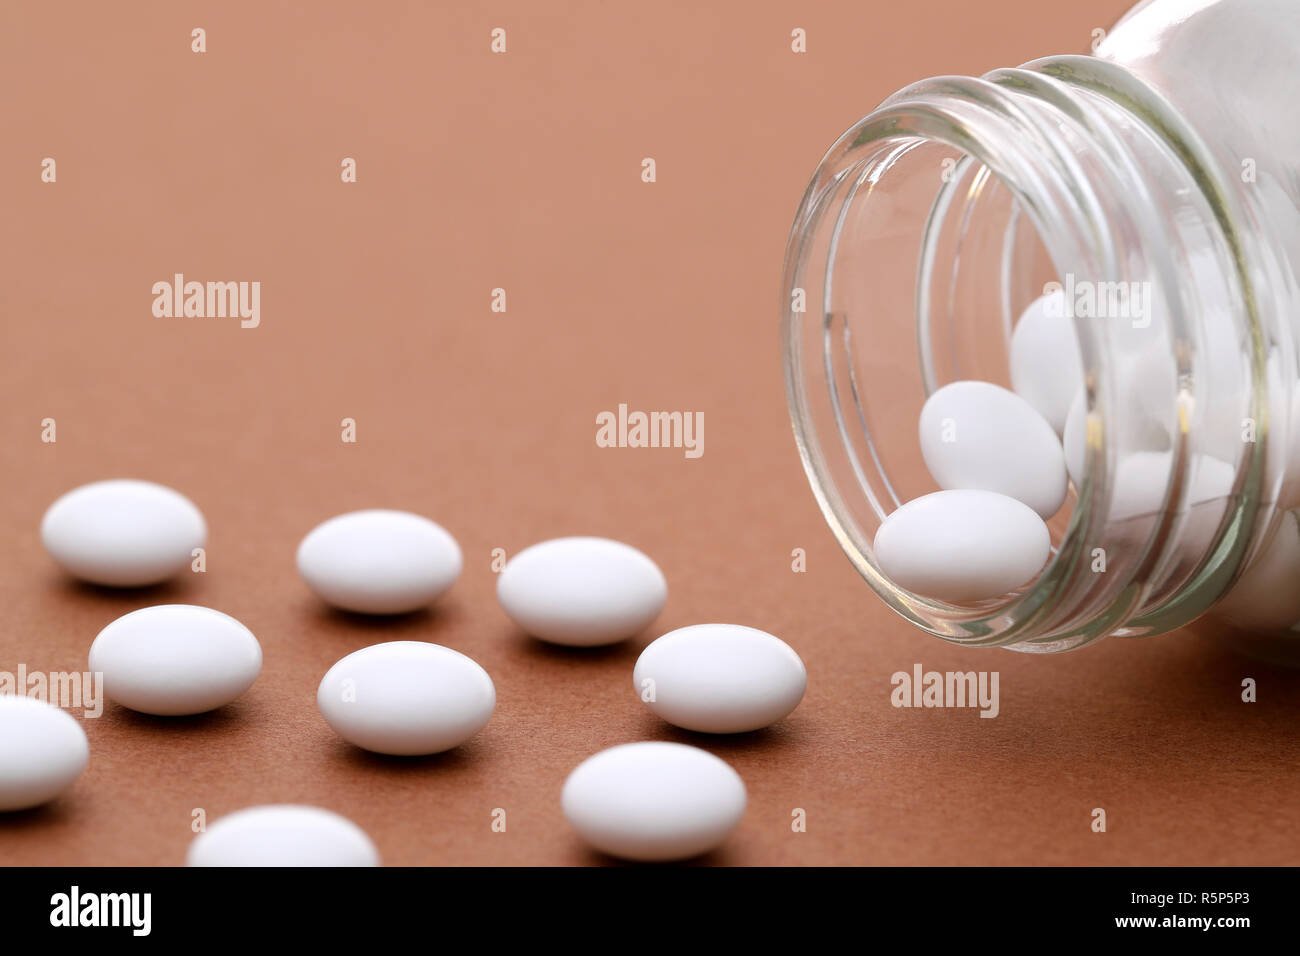 Glass bottle and pills on light brown background Stock Photo